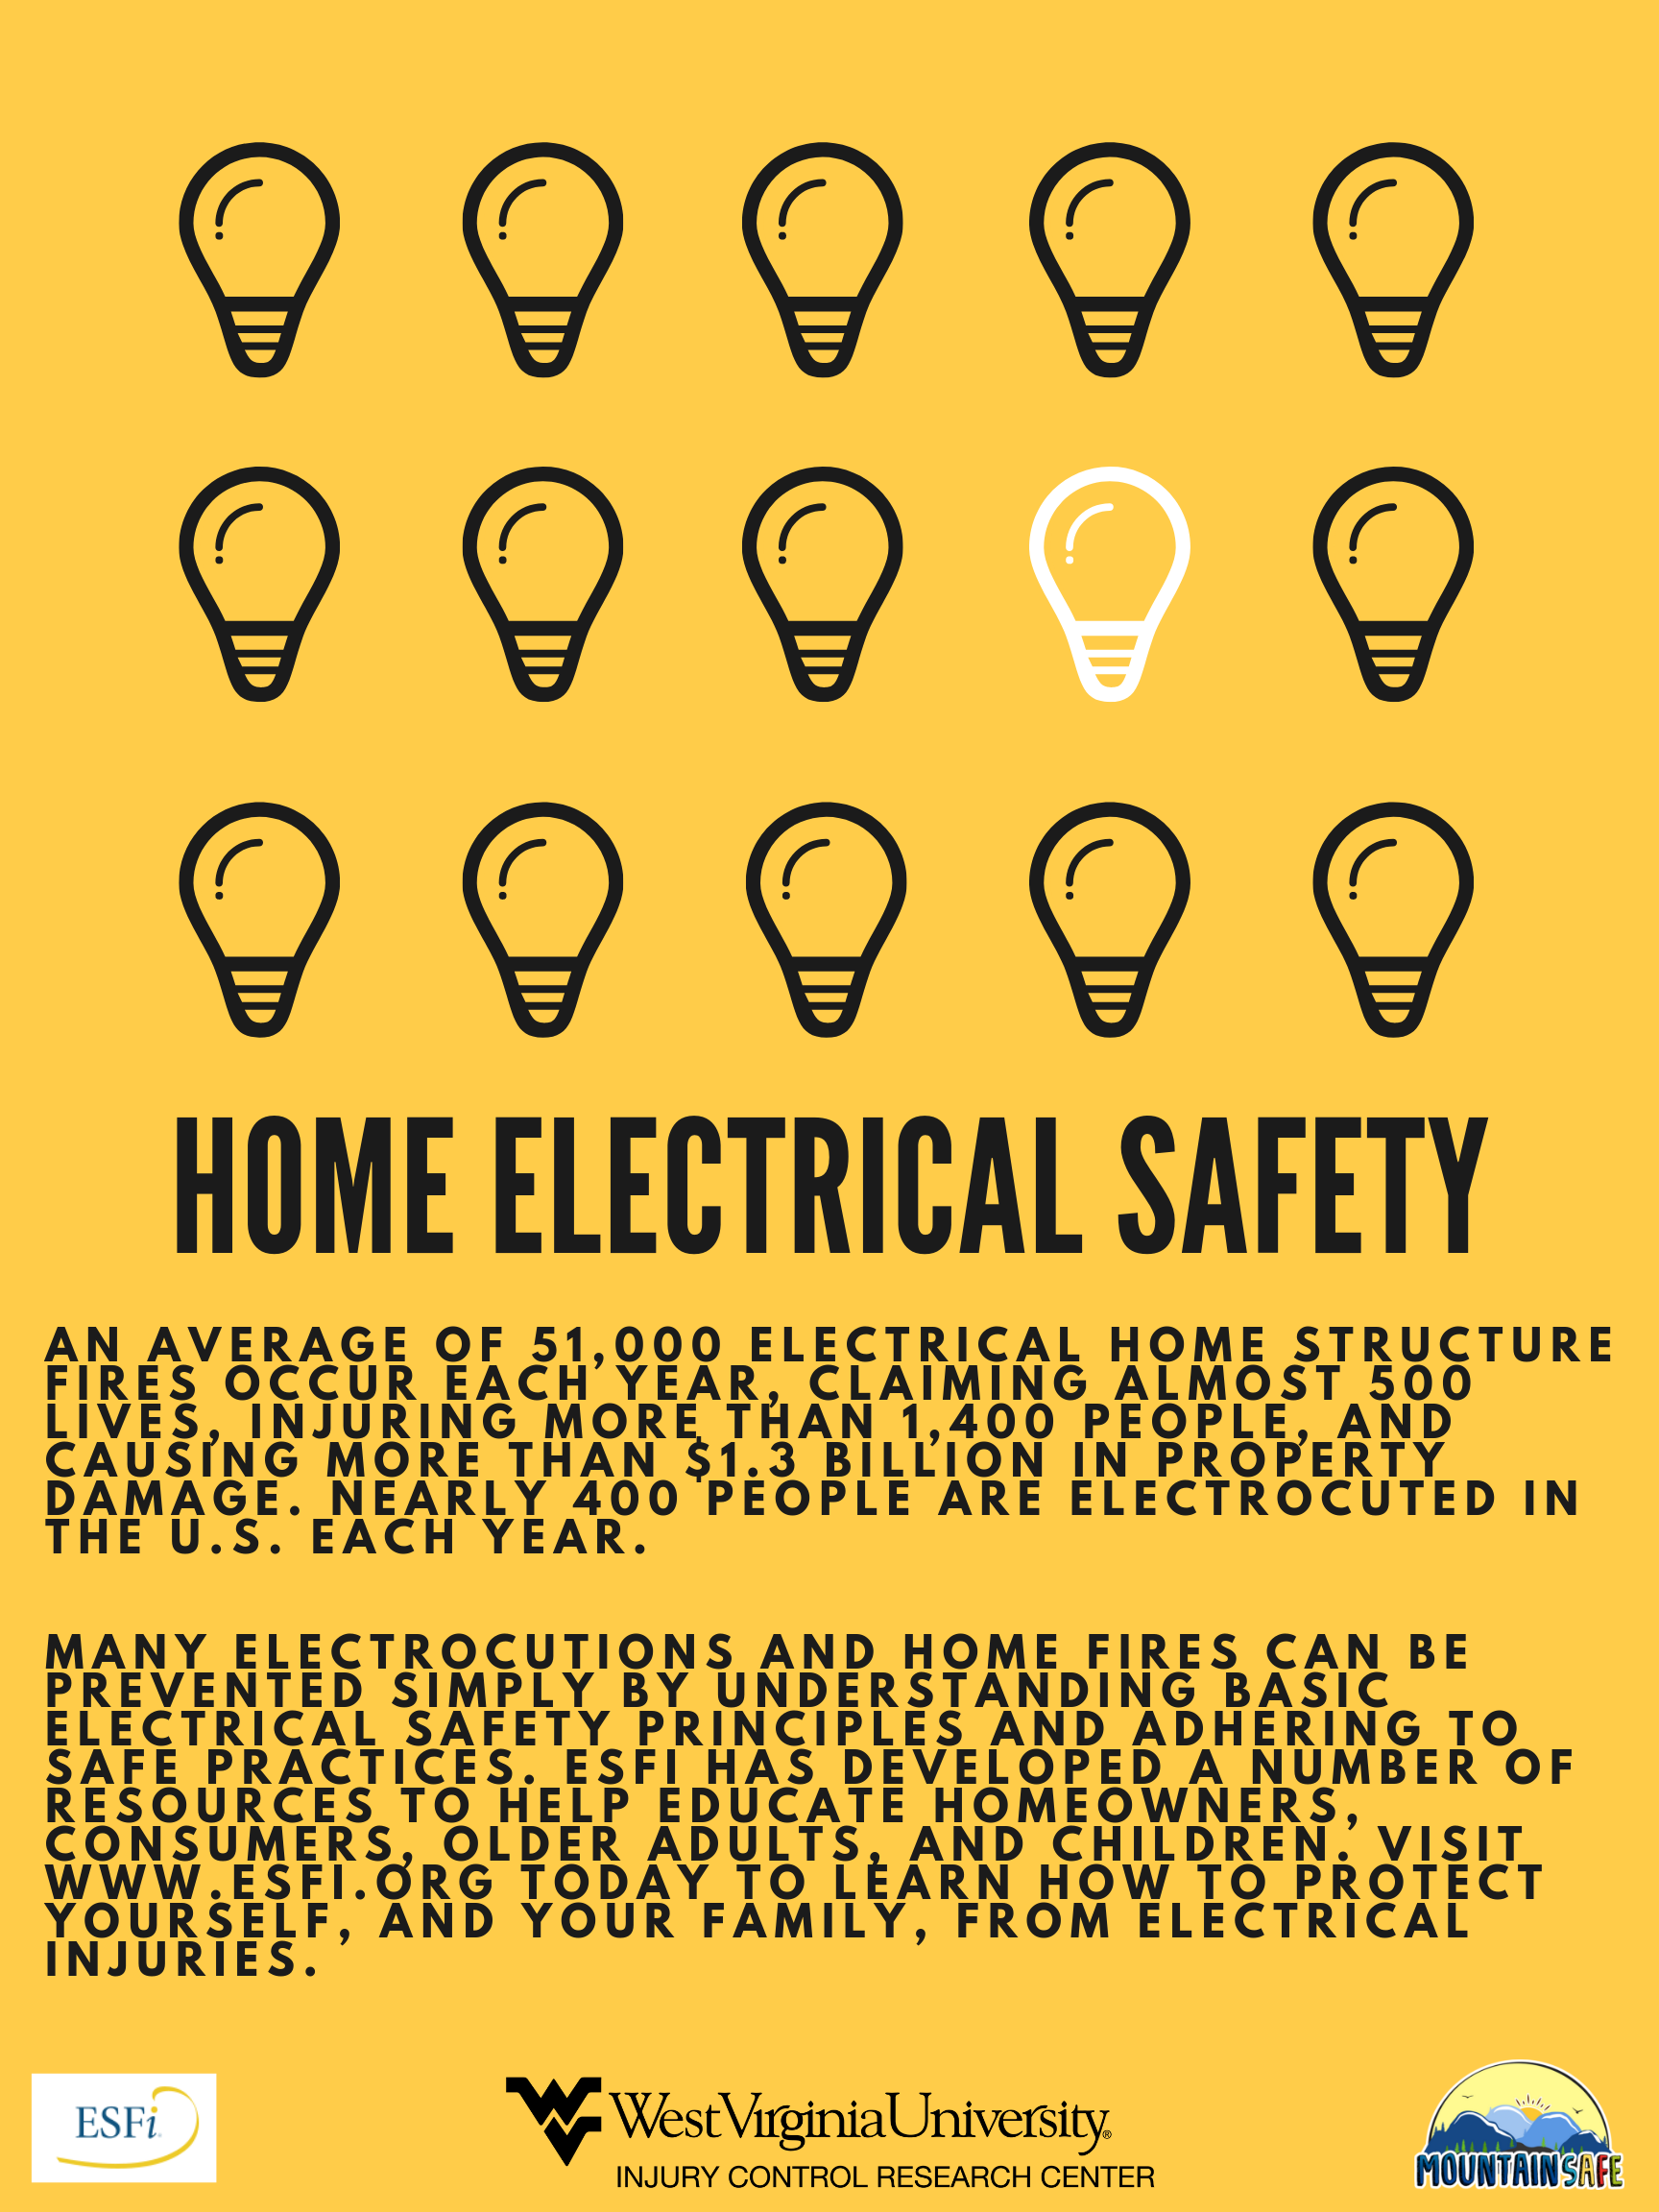 Pin by ICRC Outreach on General Safety Tips Electrical